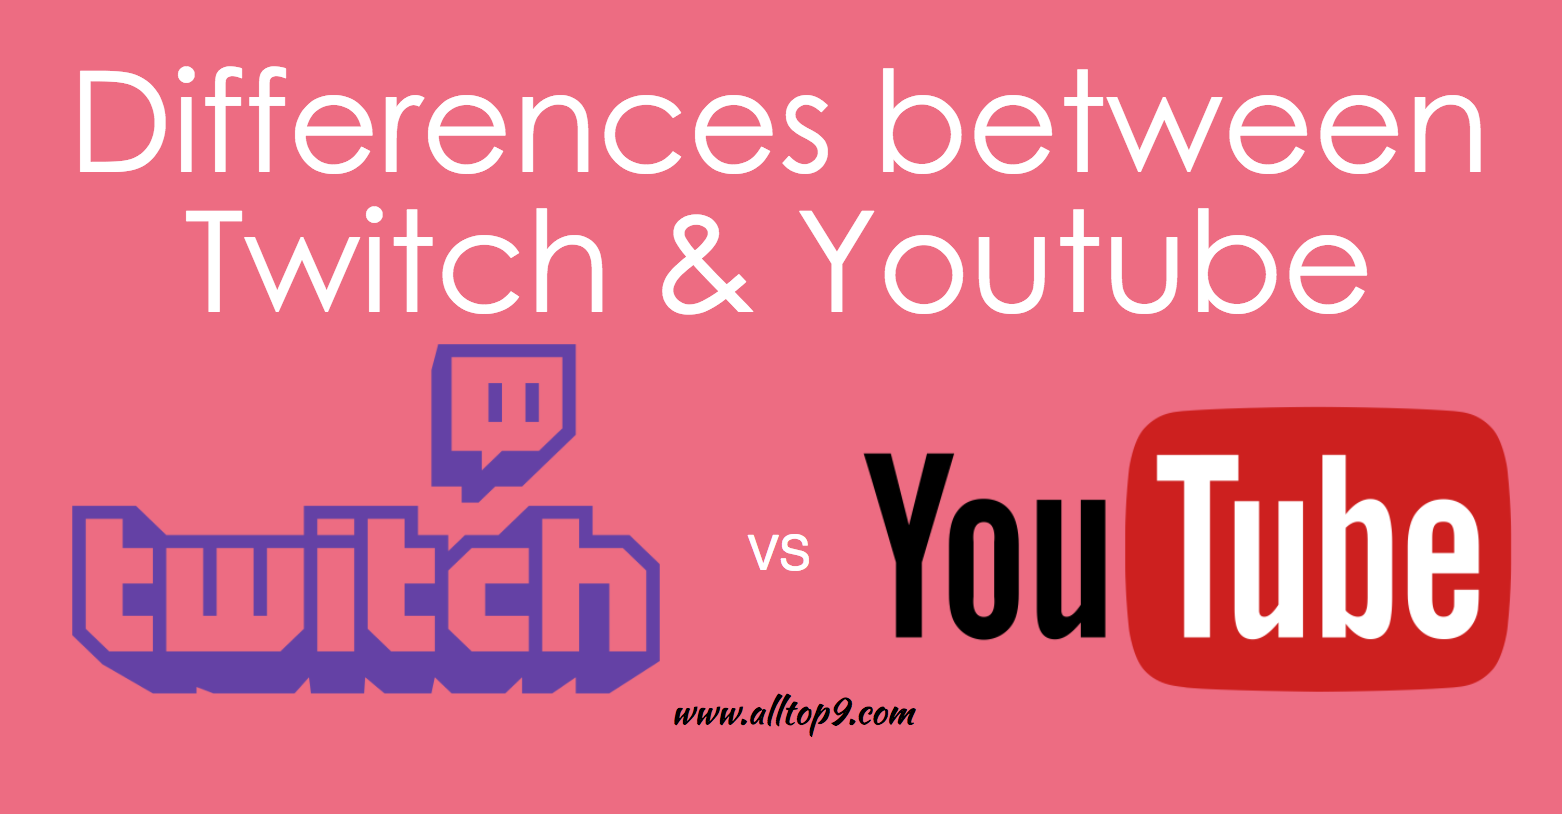 What Is The Difference Between Twitch And Youtube?